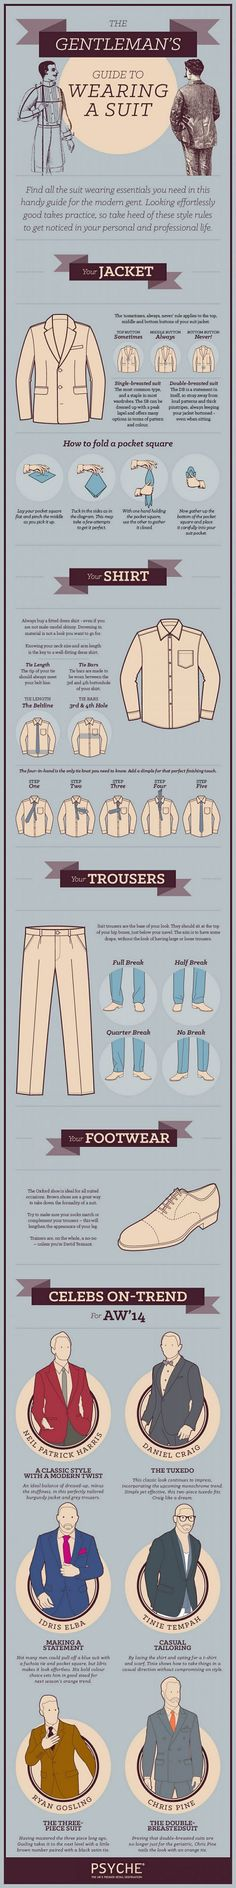 Look stylish with this suit wearing guide